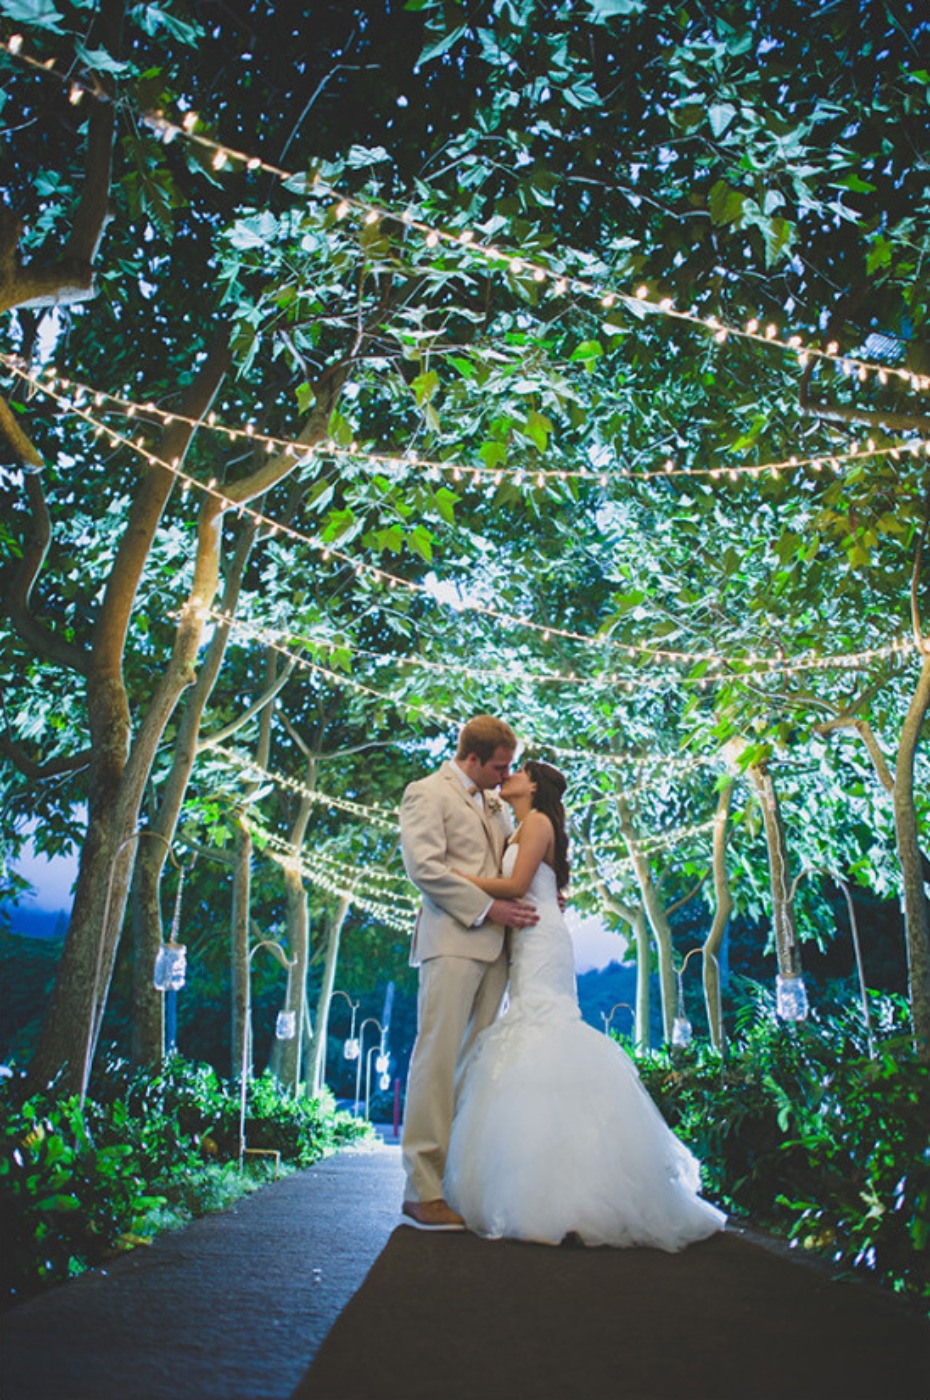 twinkle lights for your wedding night